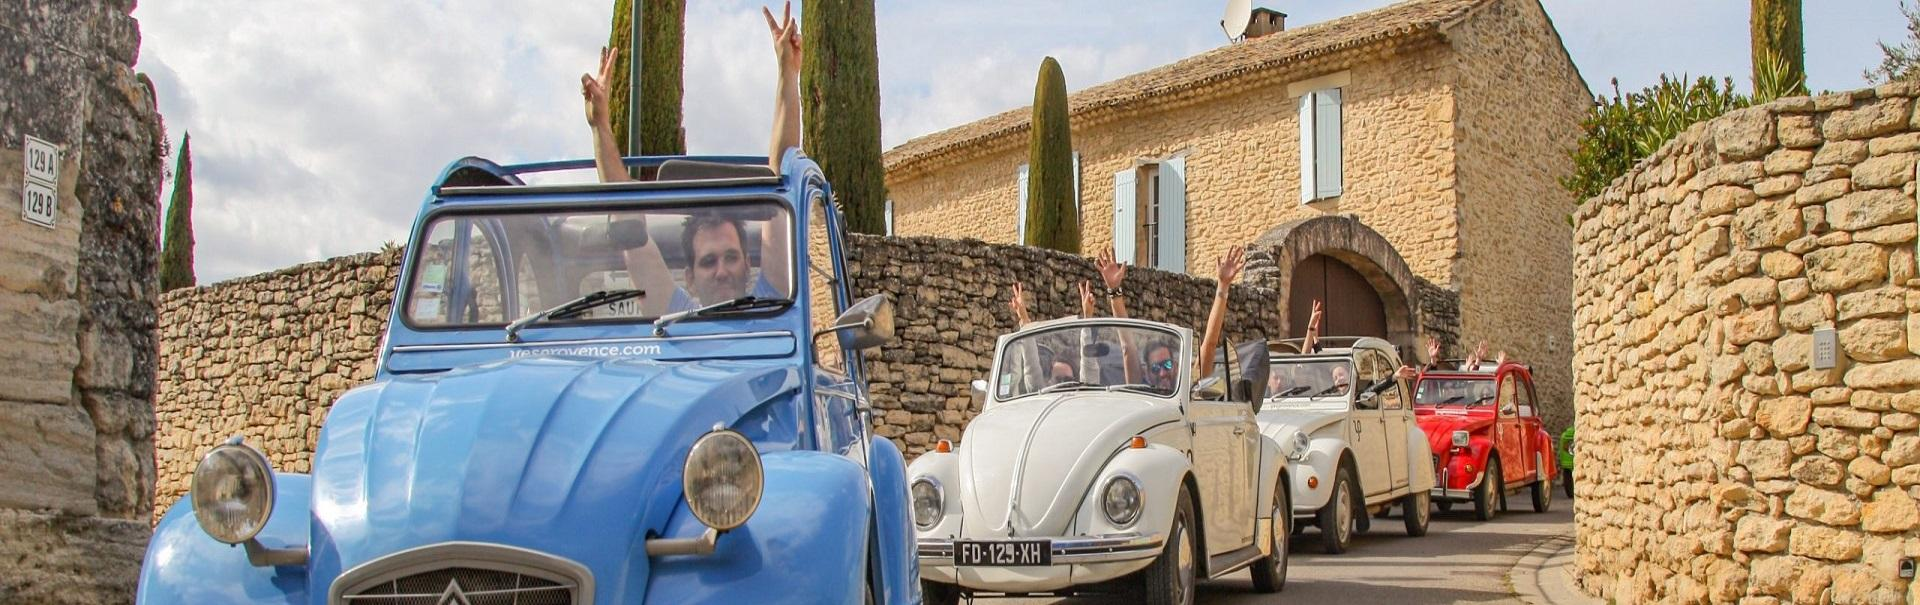 https://www.seminairesdecaractere.fr/notre-maison/yes-provence-location-voiture-vintage-provence-seminaires-de-caractere/